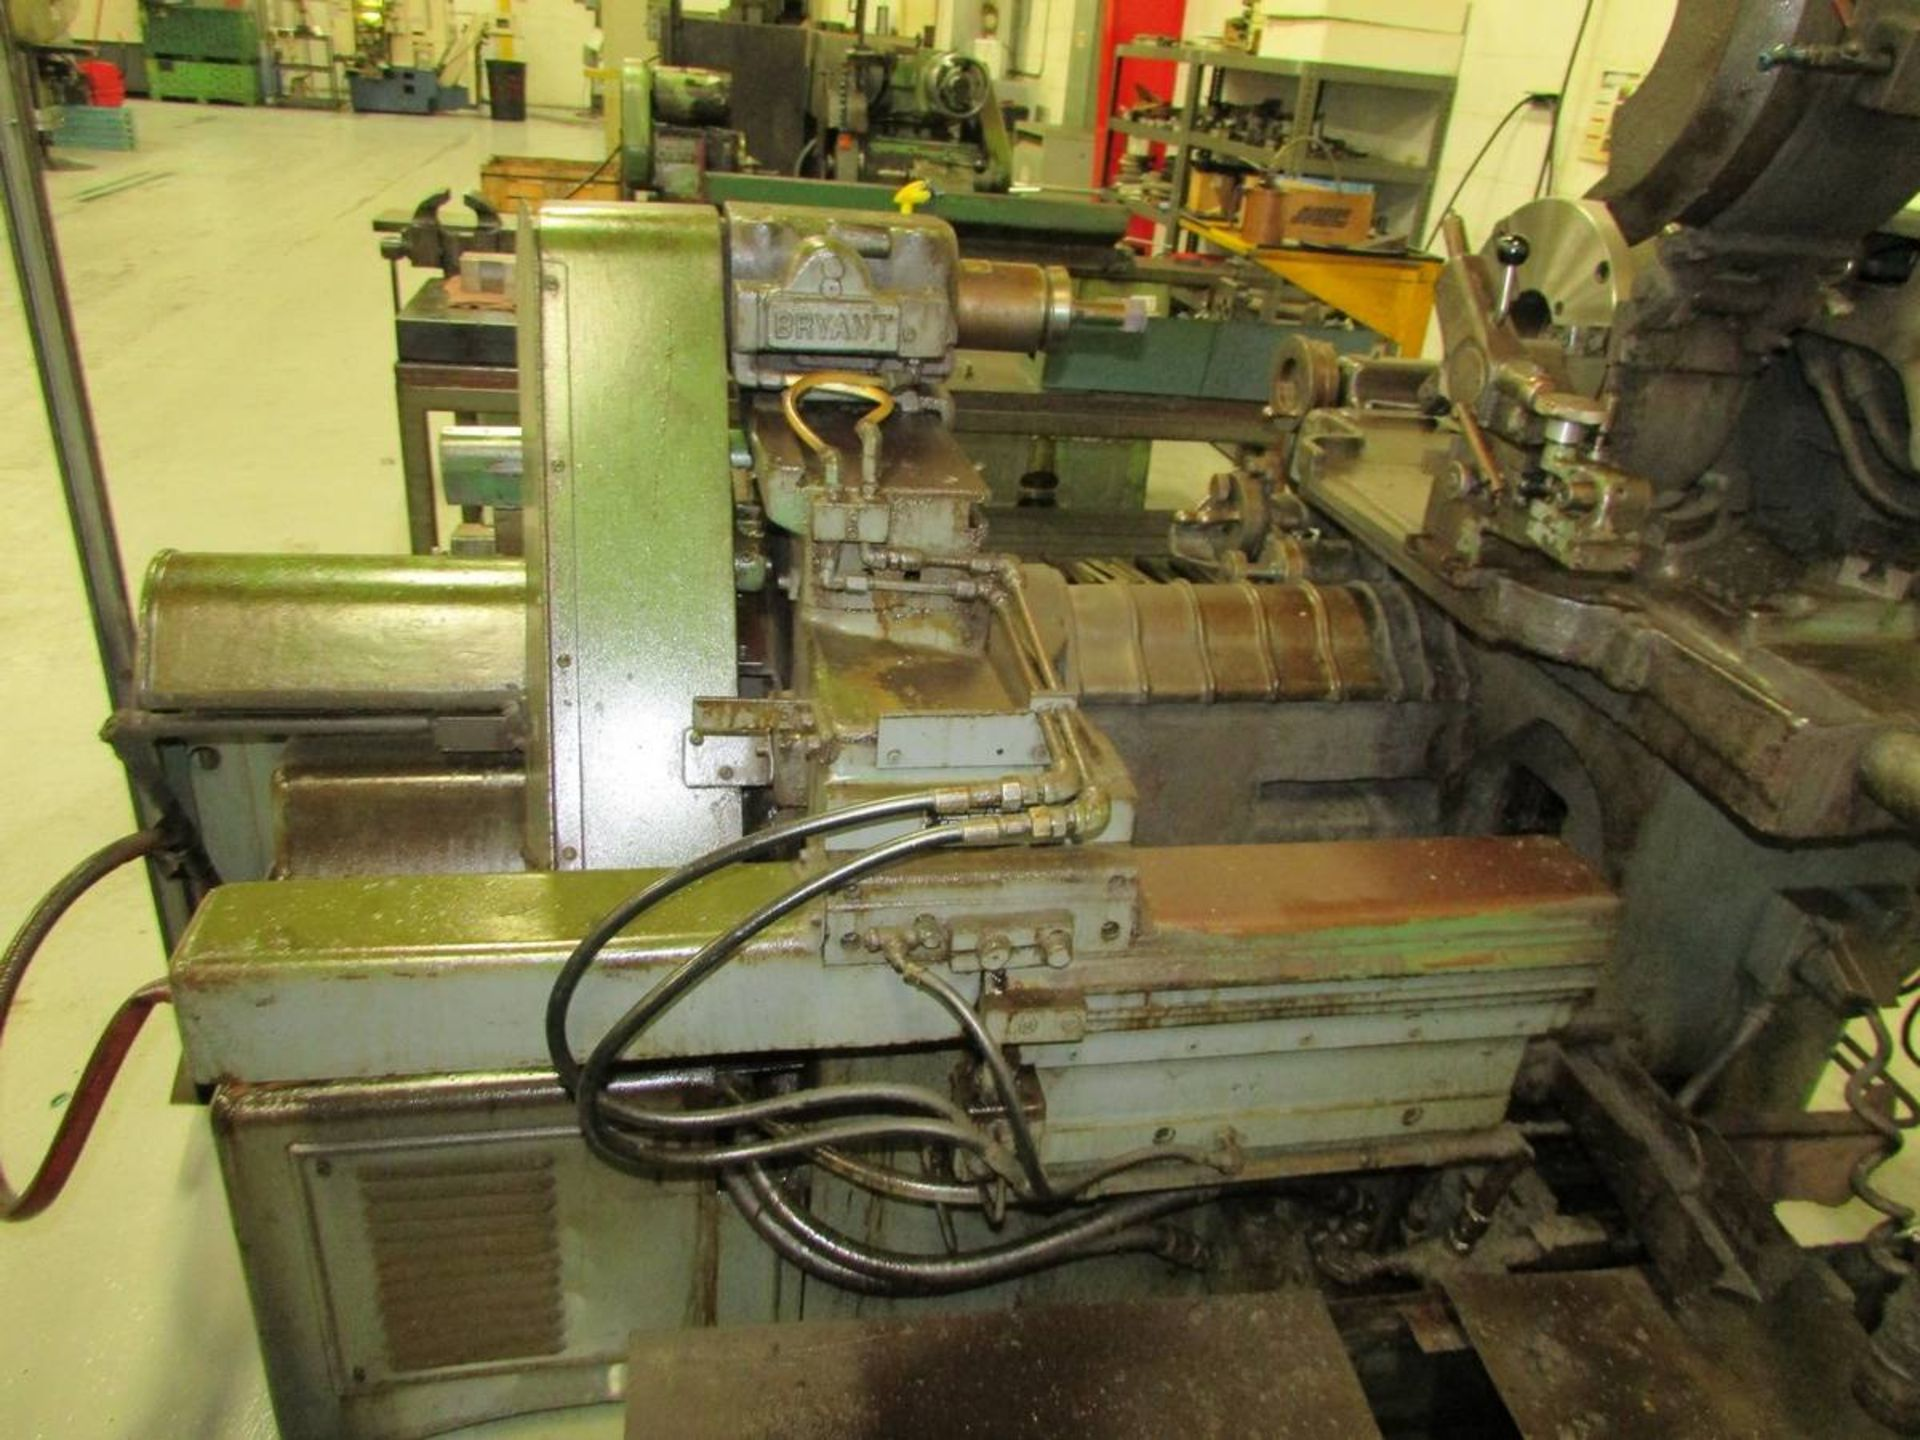 1981 Bryant 1116 ID Cylindrical Grinder - Image 18 of 20